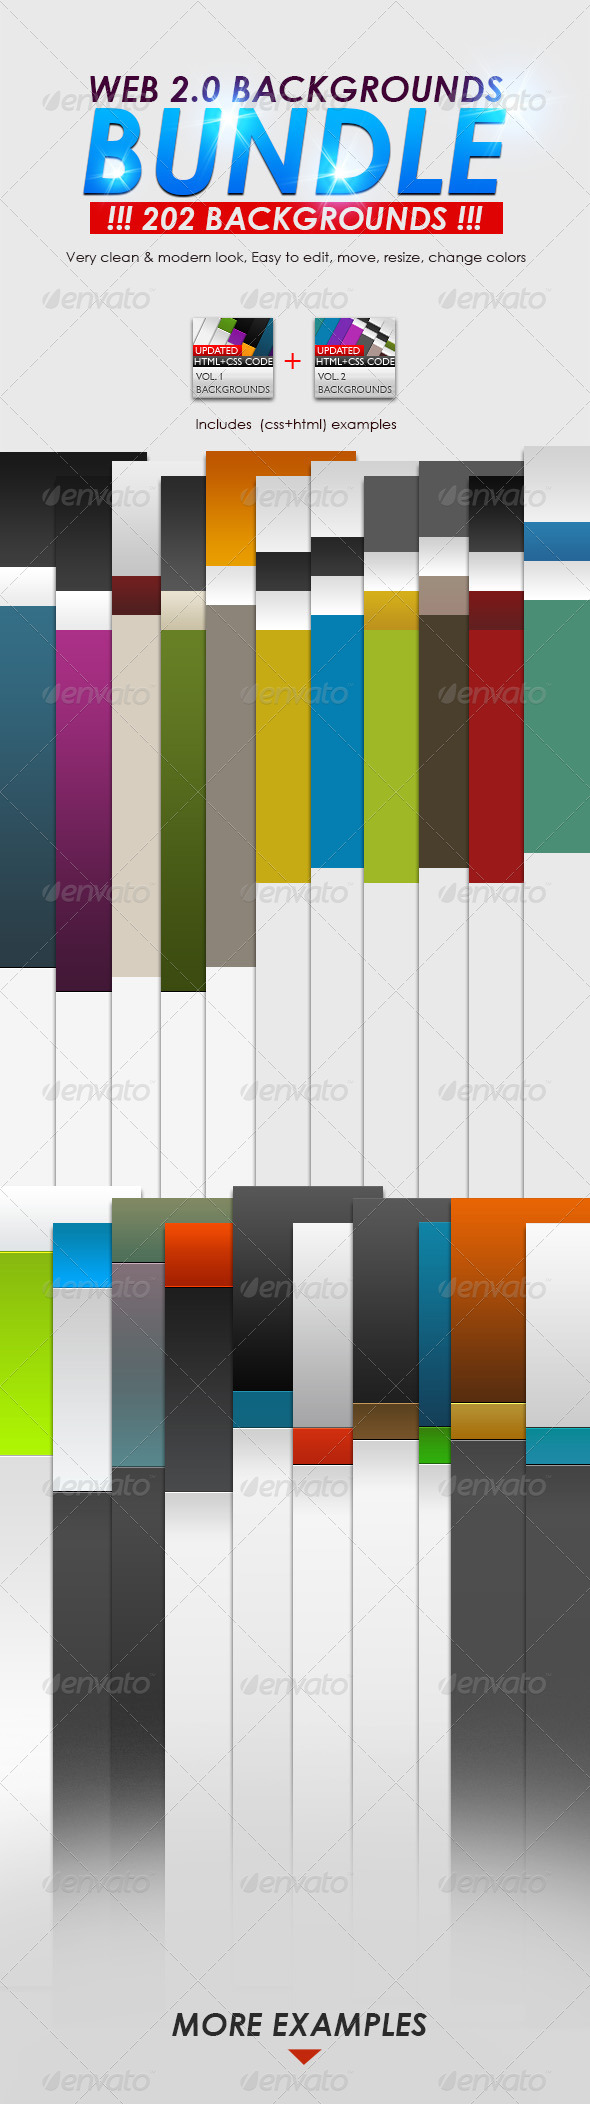 Web 2.0 Backgrounds Bundle - Backgrounds Graphics